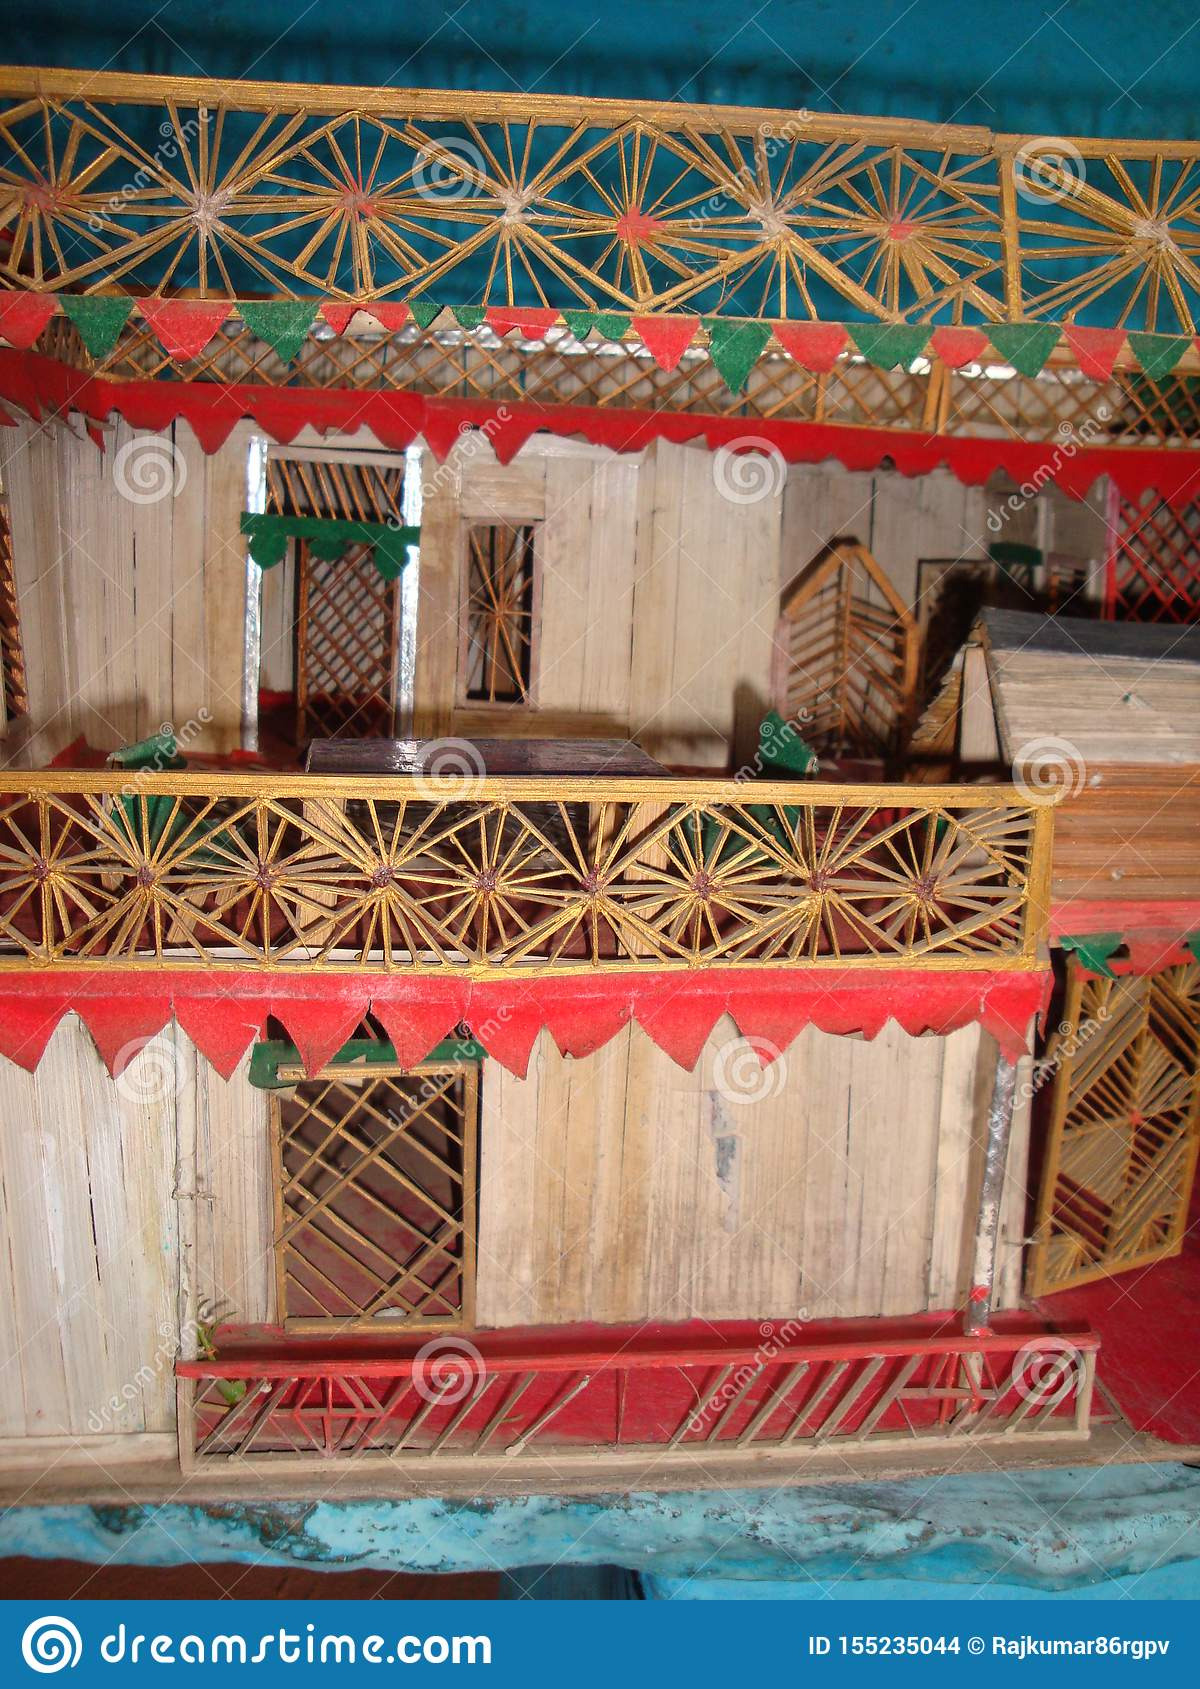 d model house madeup bamboo strips material using fevicol glue some colored papers paints etc showing door